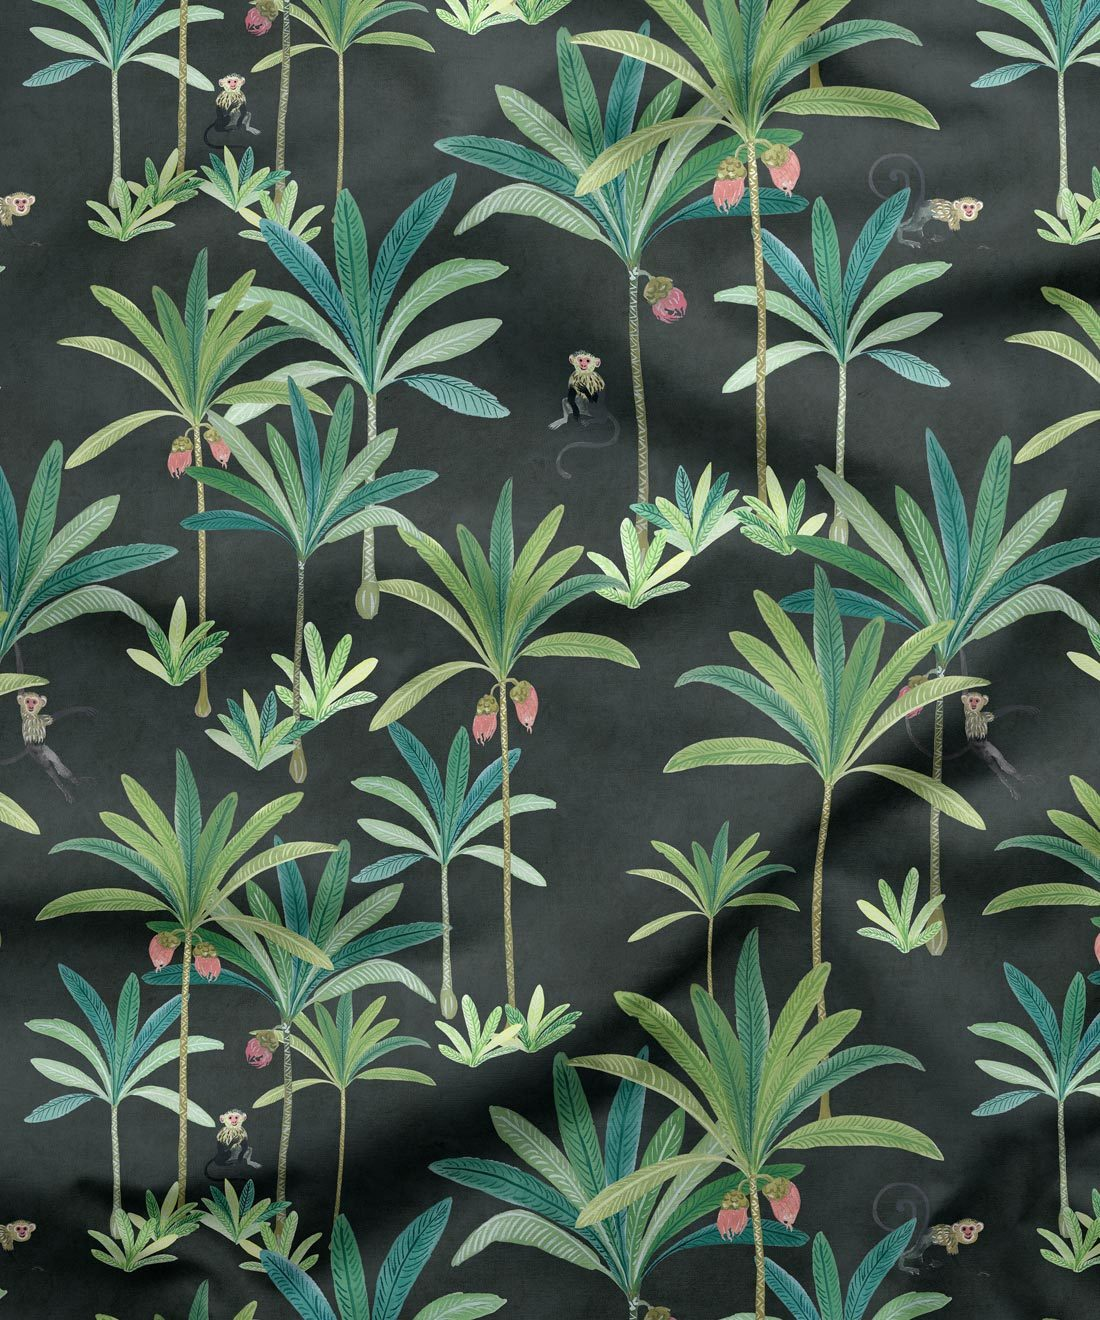 Monkey Palm Fabric Charcoal